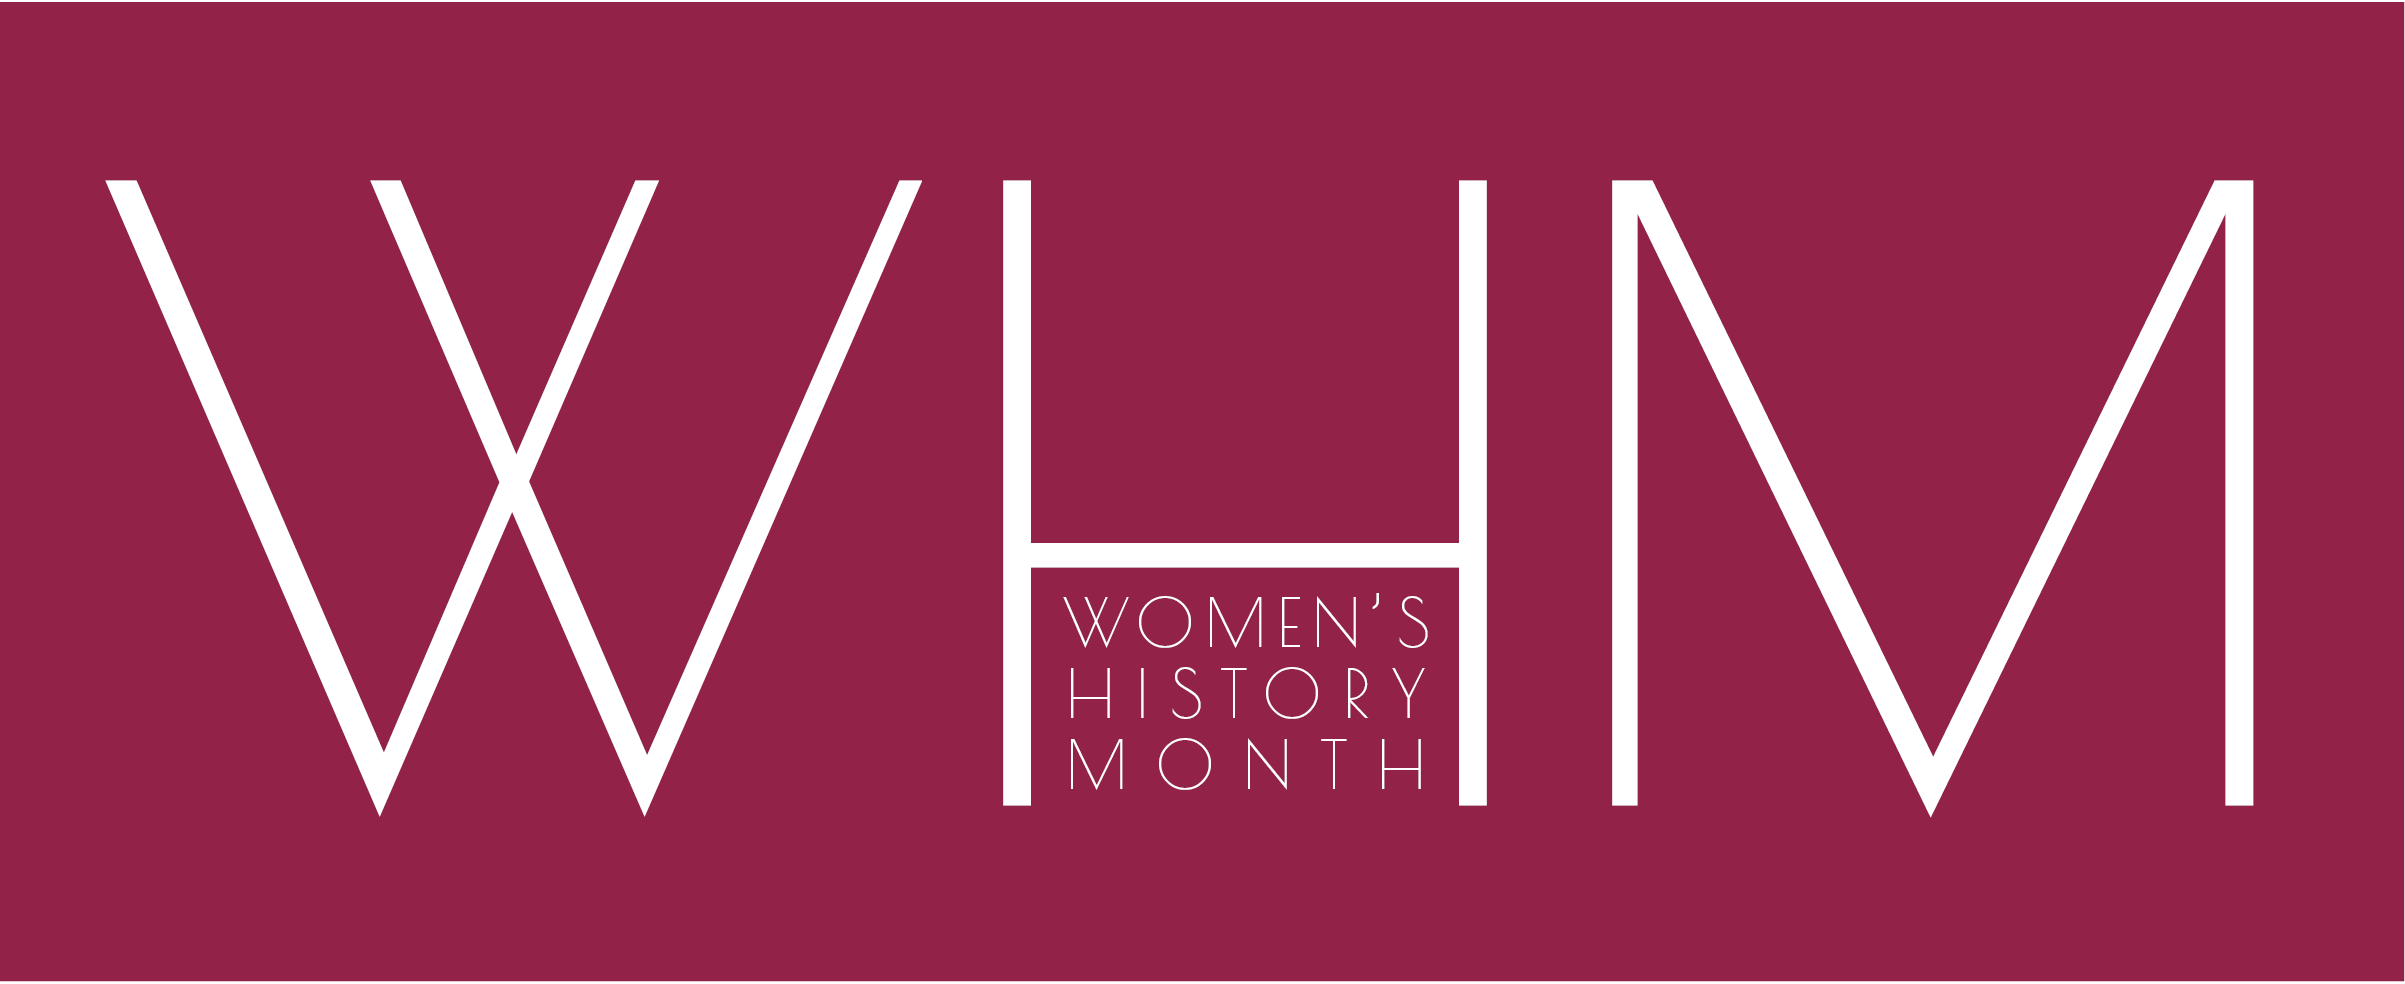 Women's History Month 2017 at Loyola  University Chicago